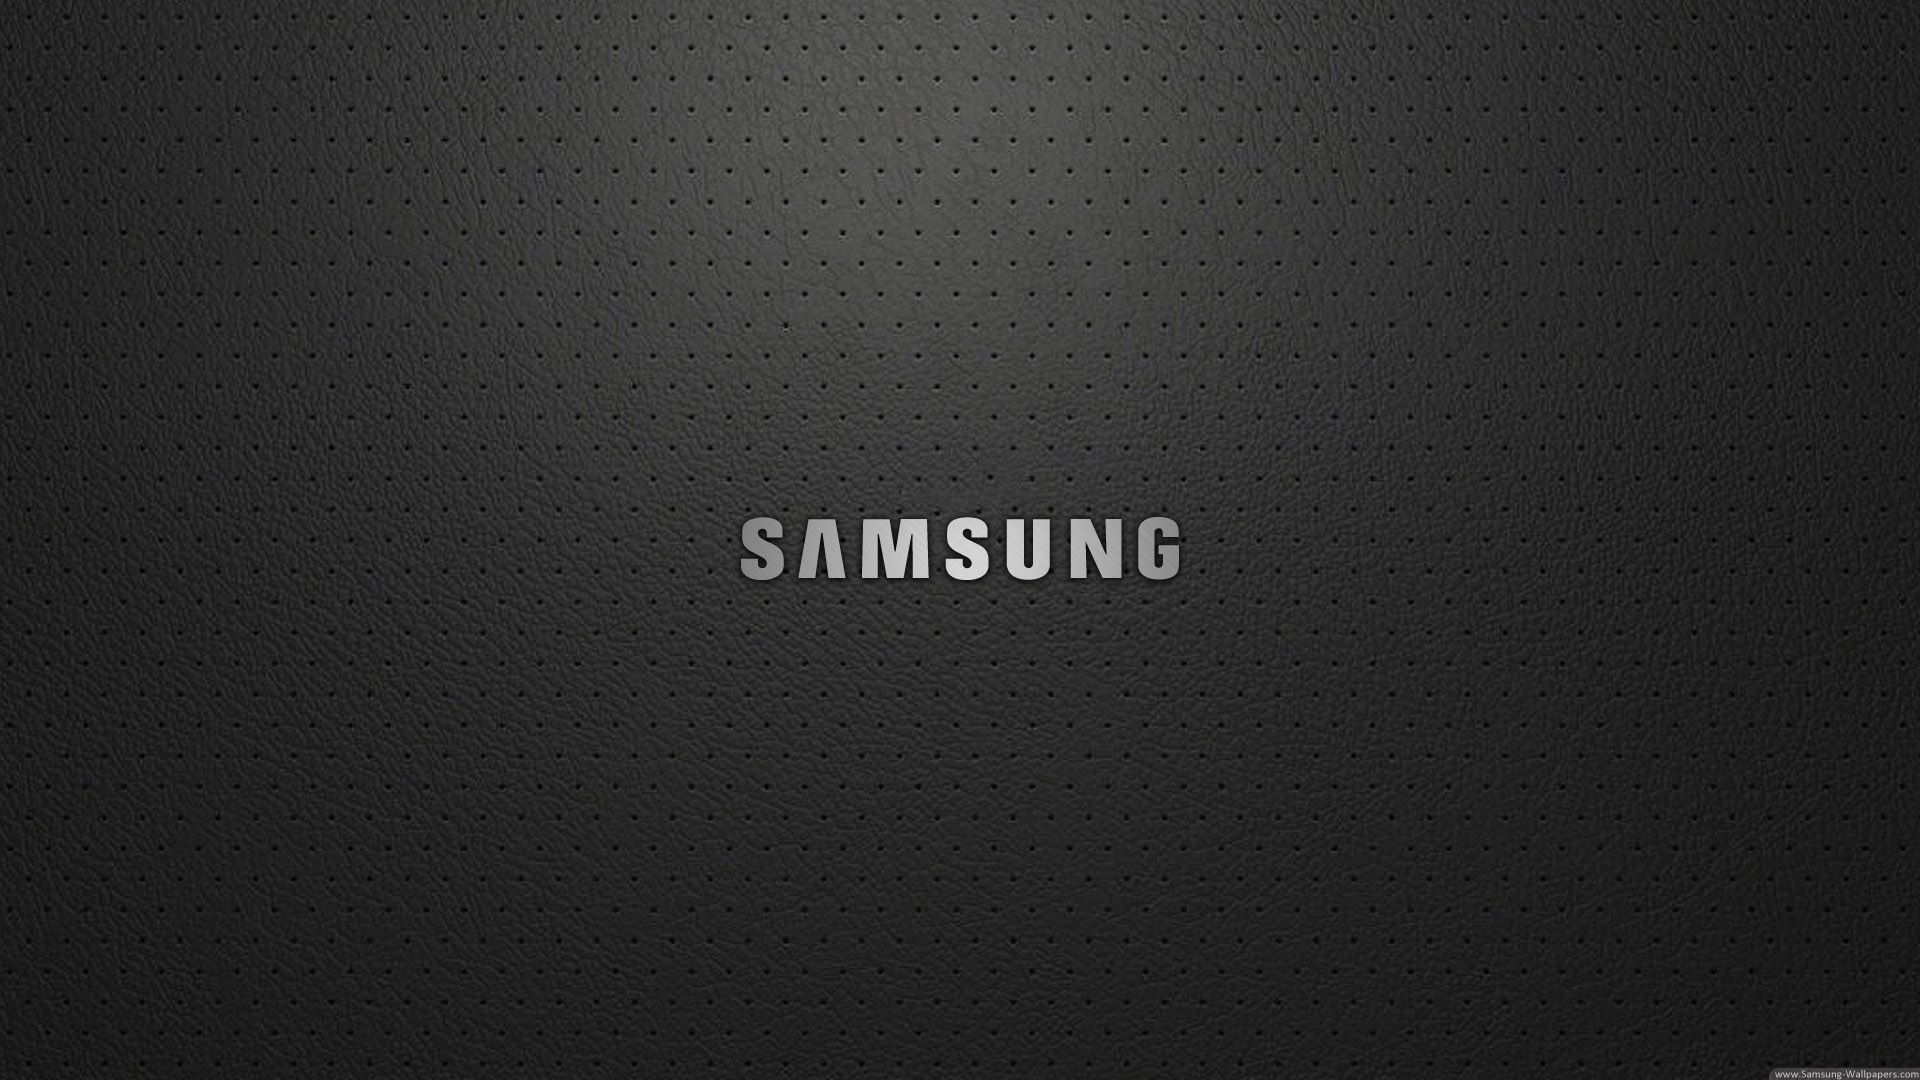 Samsung Logo Wallpapers